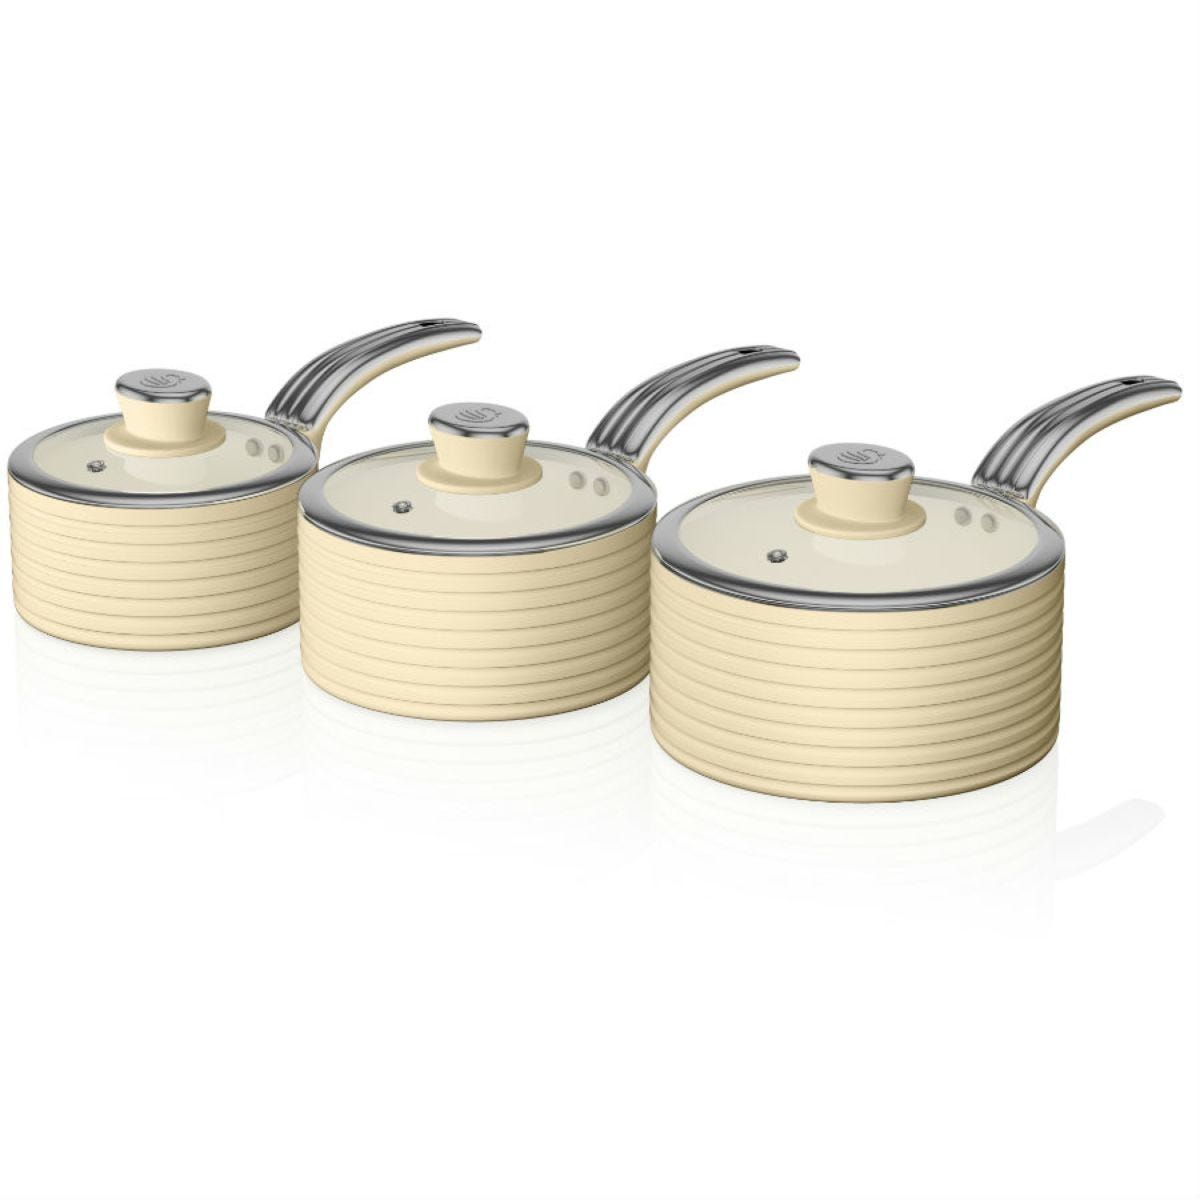 Swan Retro 3 Piece Saucepan Set – Cream